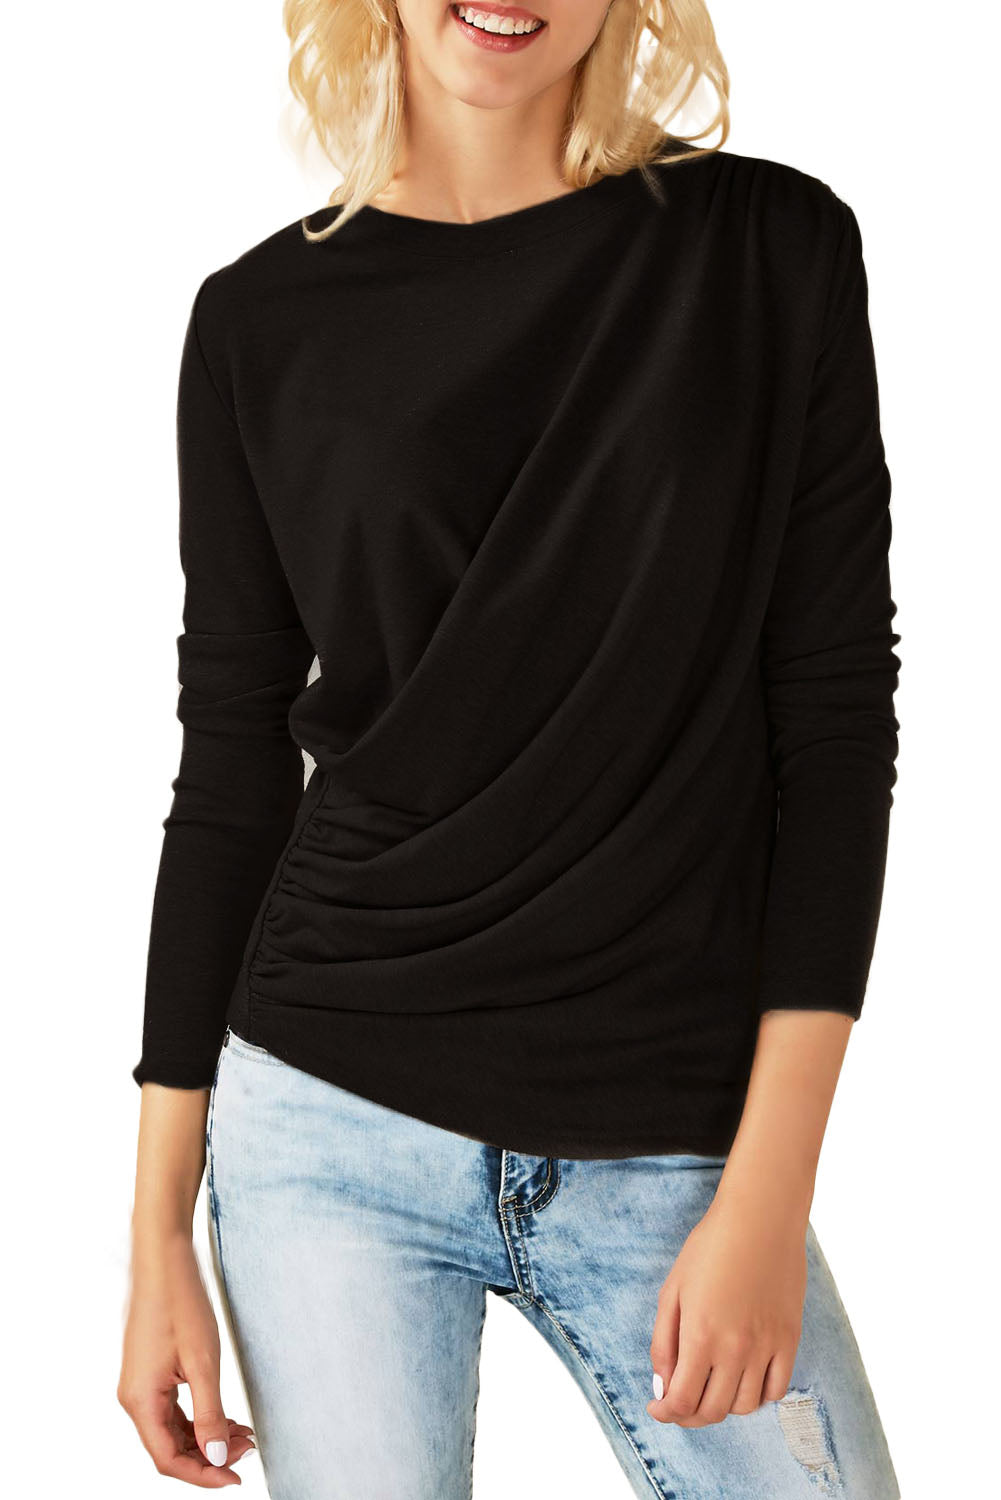 Chicloth Black Long Sleeve Draped Round Neck T Shirt